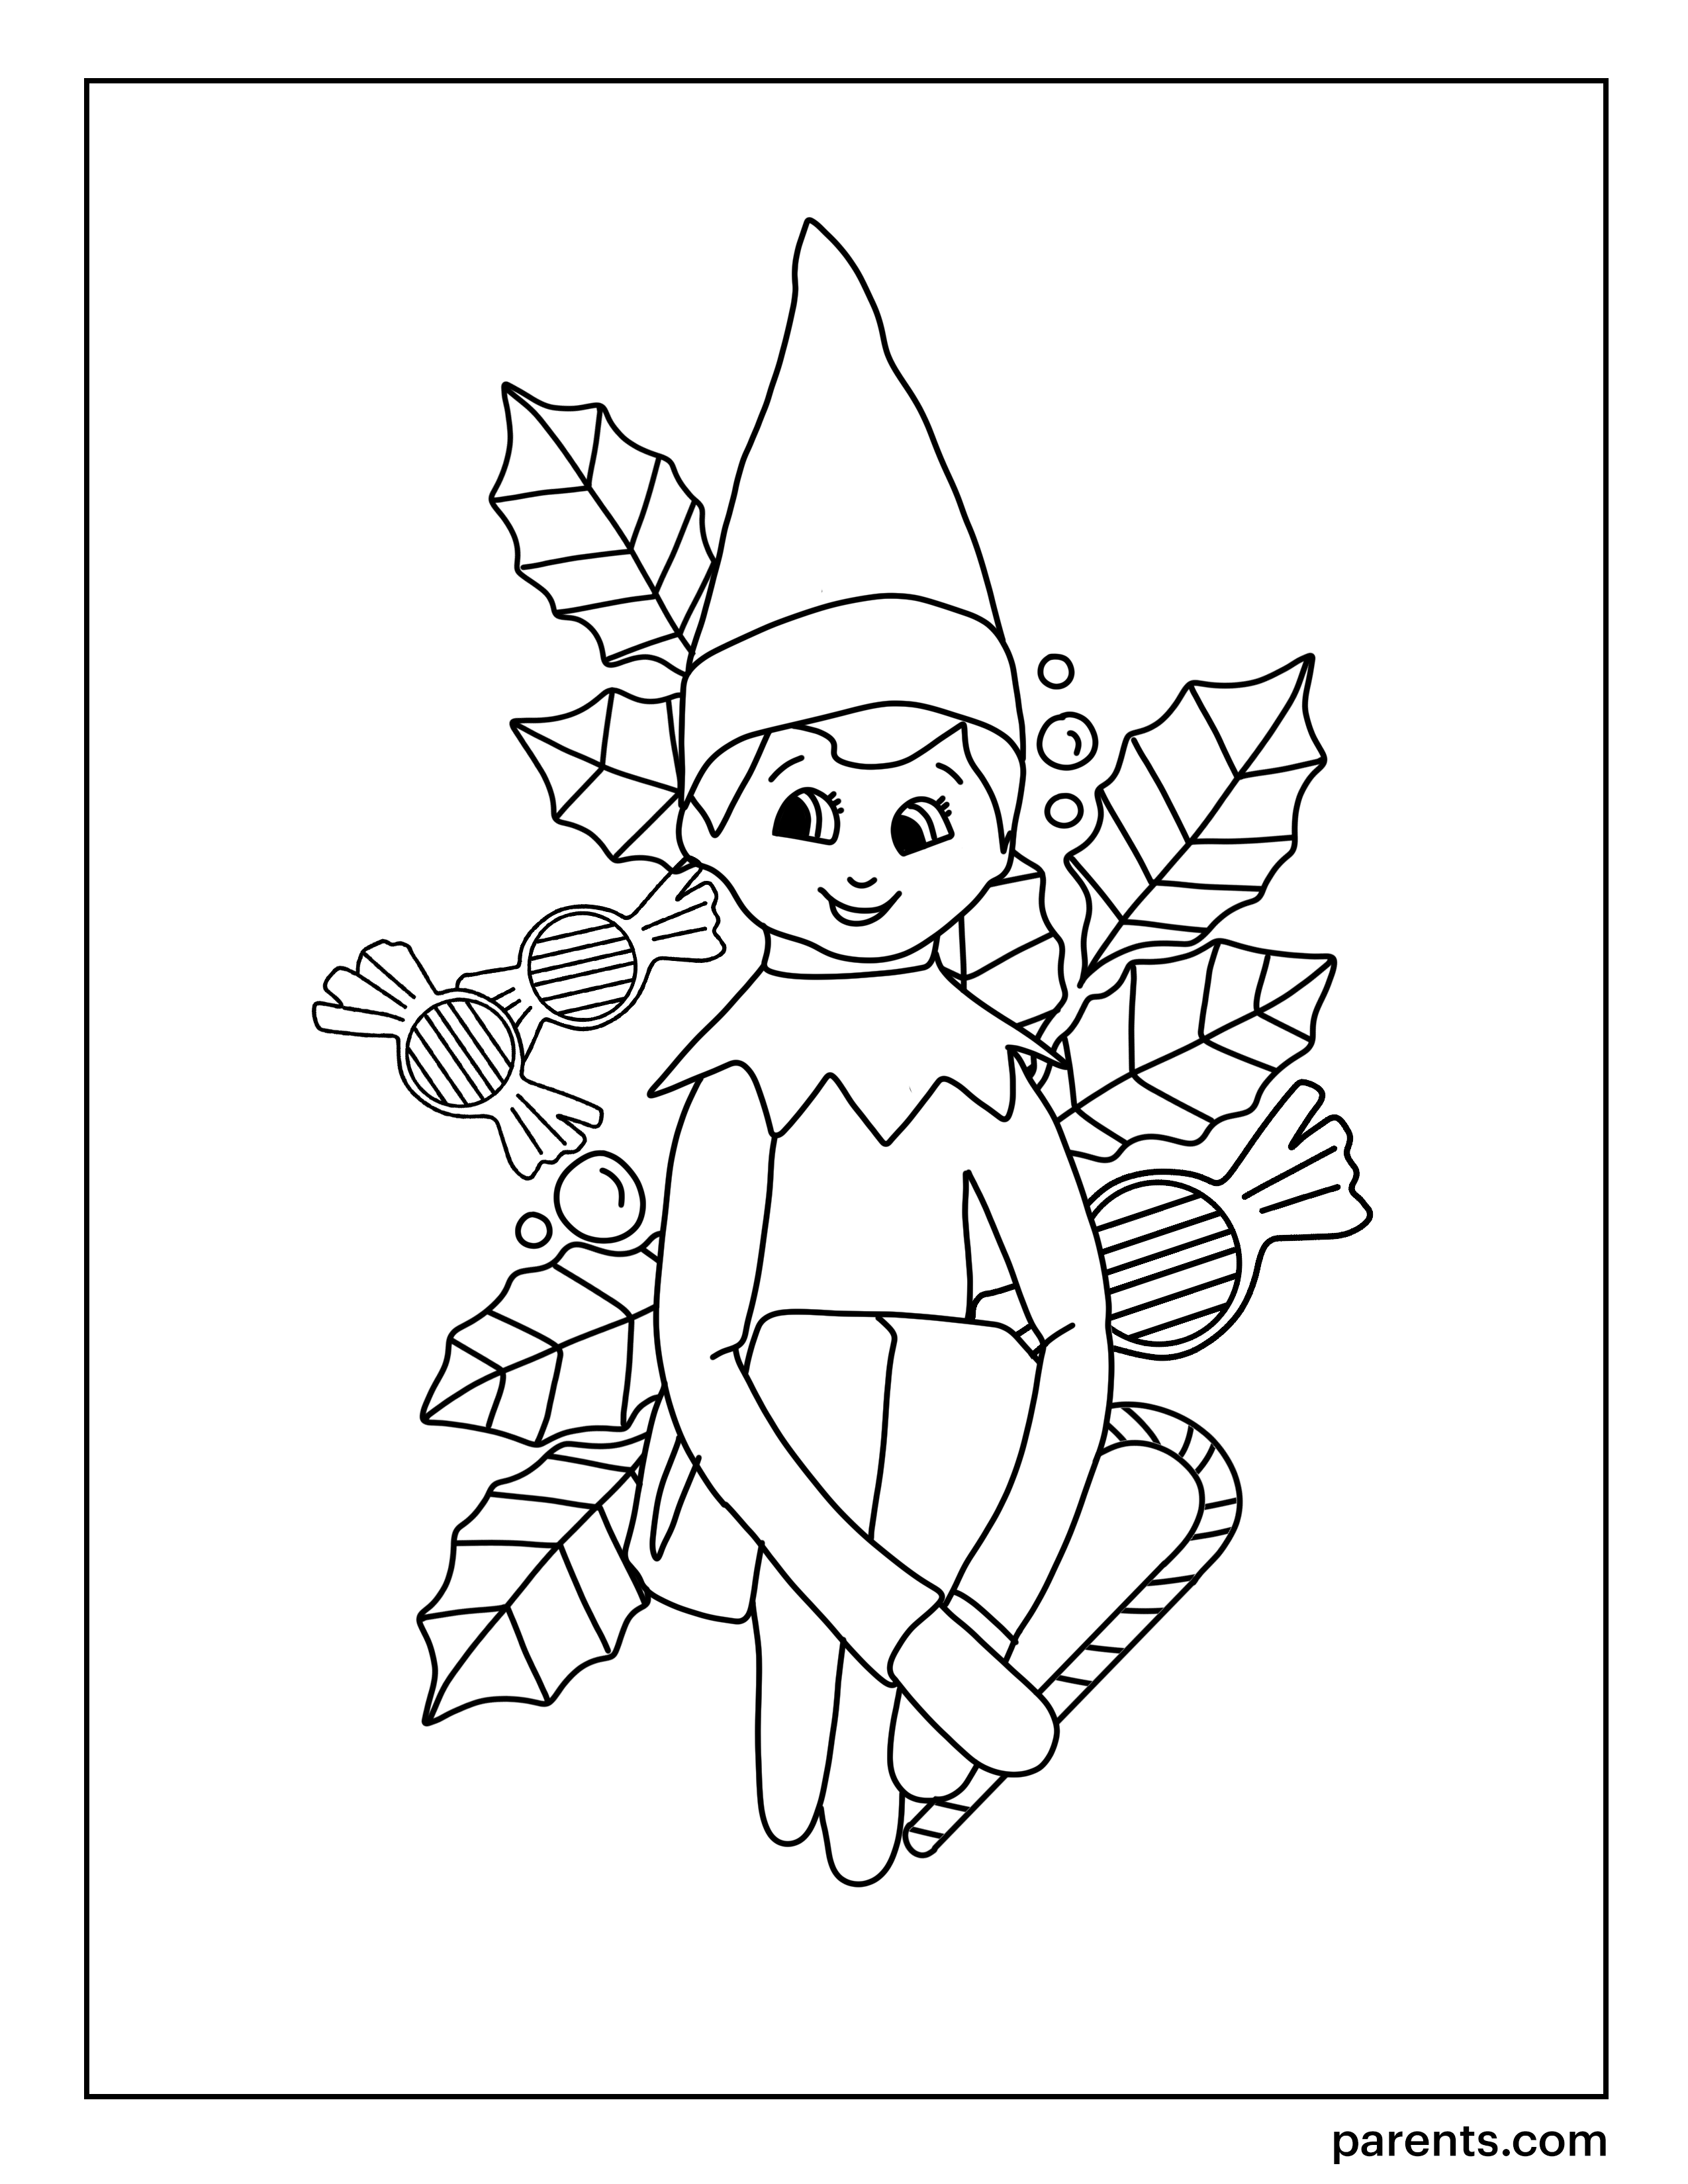 elf on the shelf coloring sheets elf on the shelf vintage christmas image print him out coloring elf on sheets shelf the